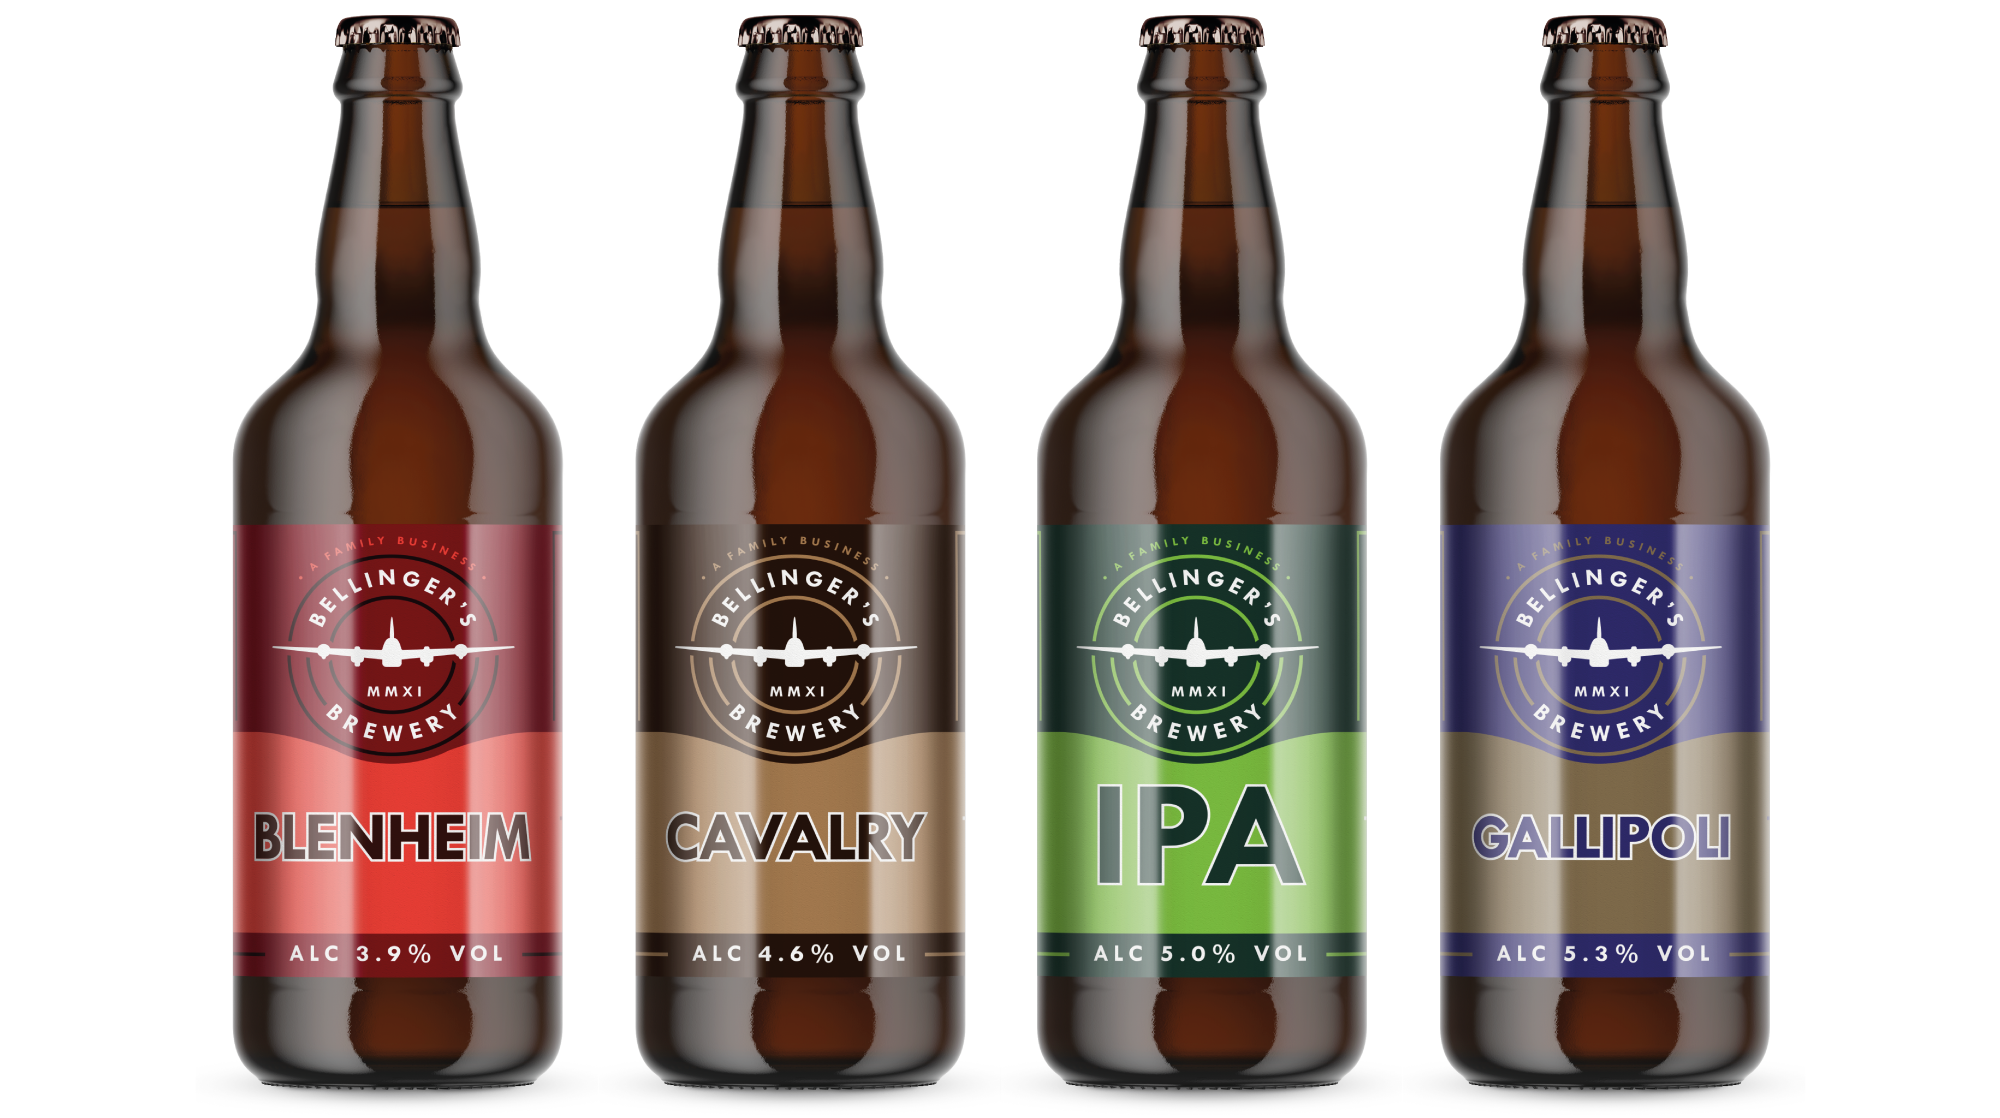 Bellingers Brewery bottle label design by Cheshire based AD Profile